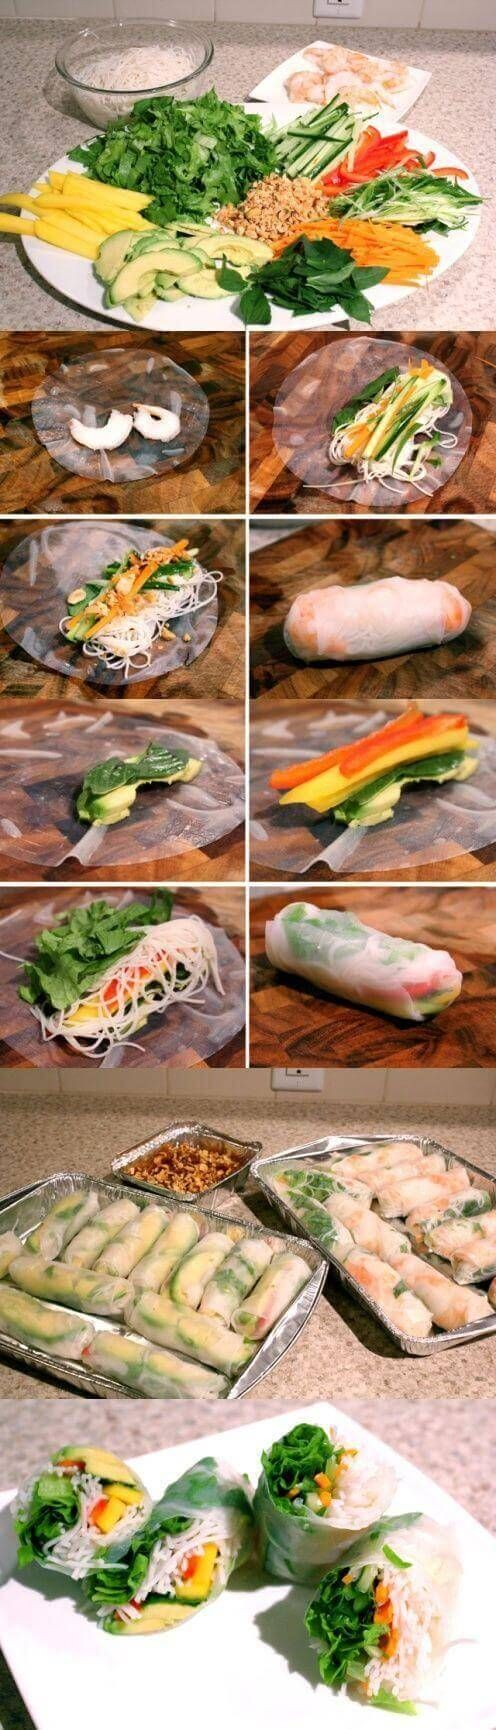 Shrimp Salad Rolls and Avocado Mango Salad Rolls - You'll be set for a spring full of flavor with these recipes. For more go to http://glamshelf.com